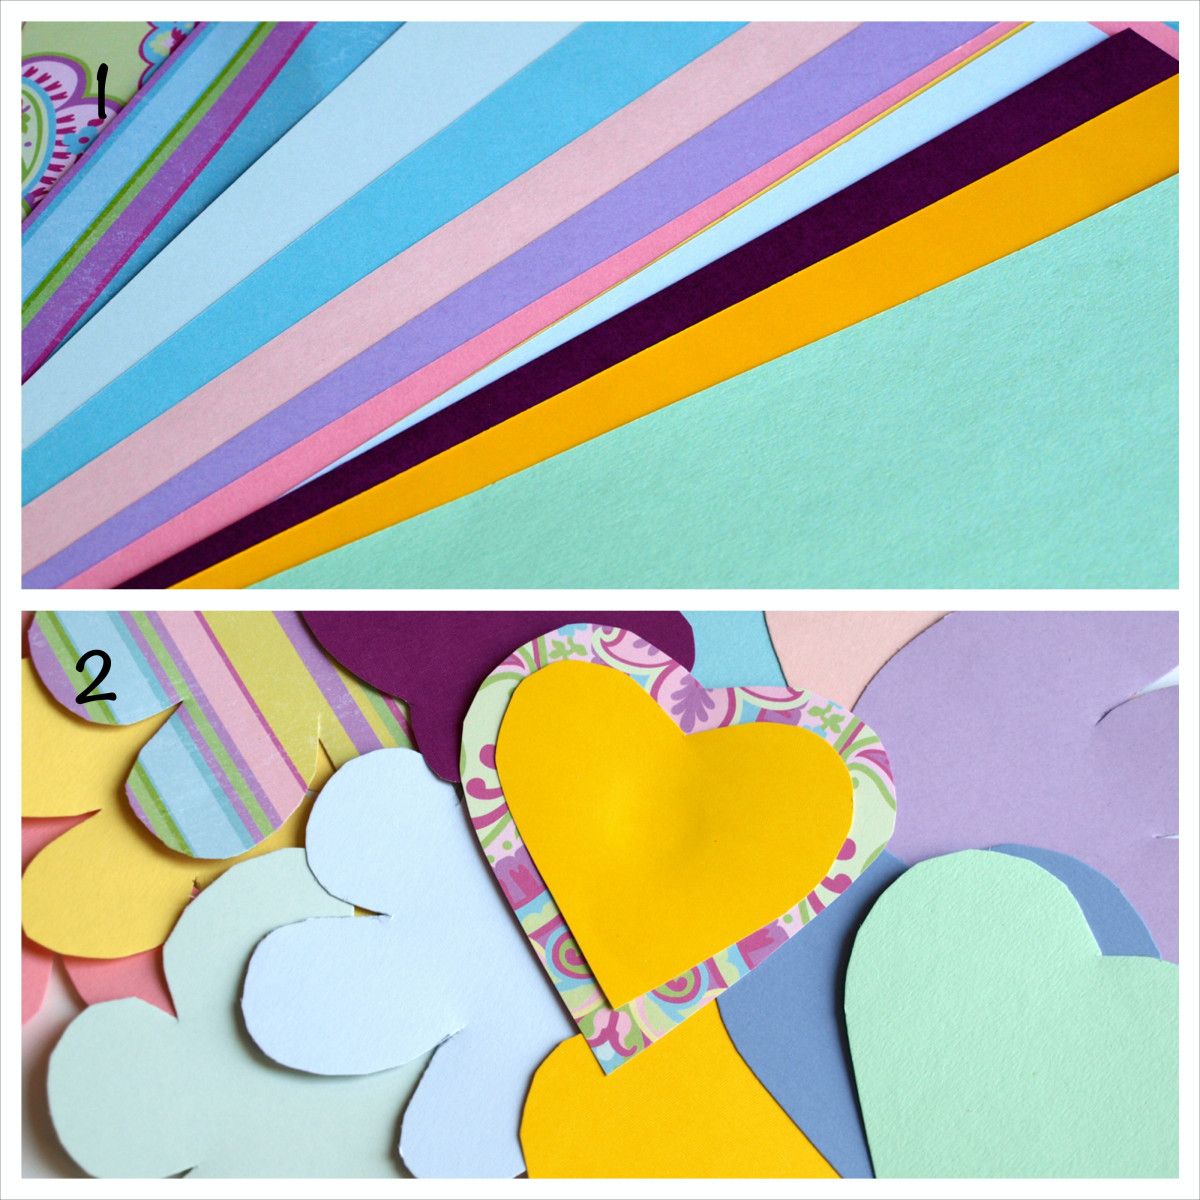 Using card stock or scrapbook paper, cut out shapes.